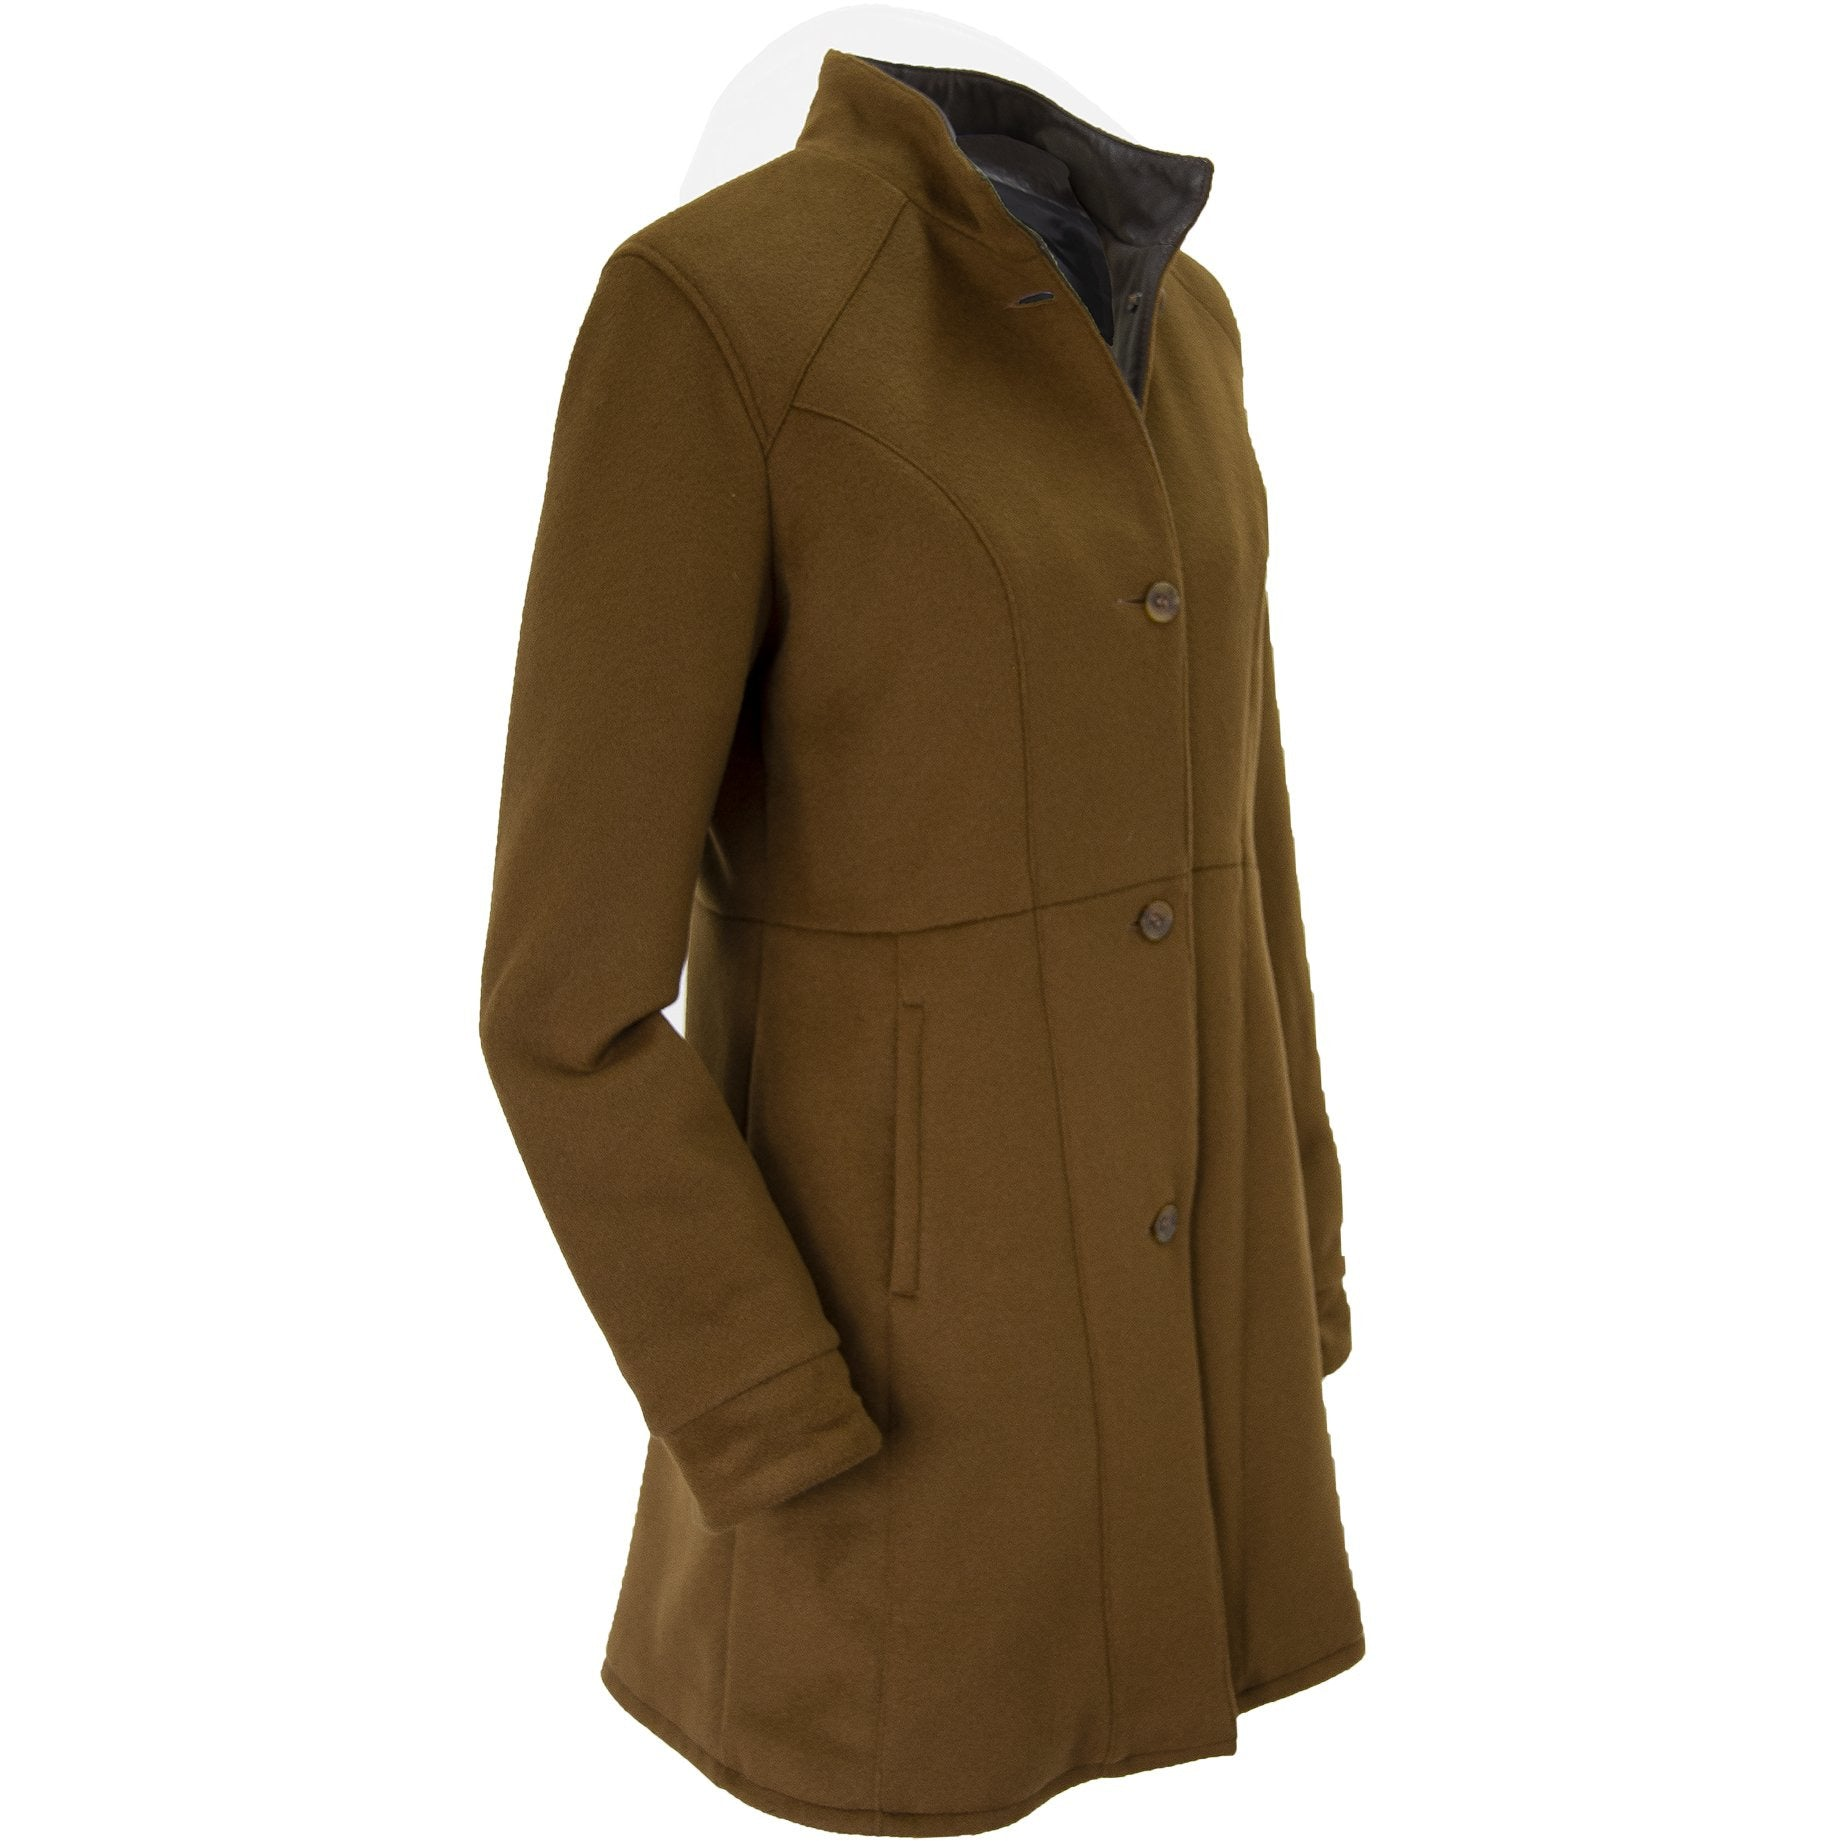 9022 - Ladies Wool Cashmere Swing Coat in Camel/Rustic